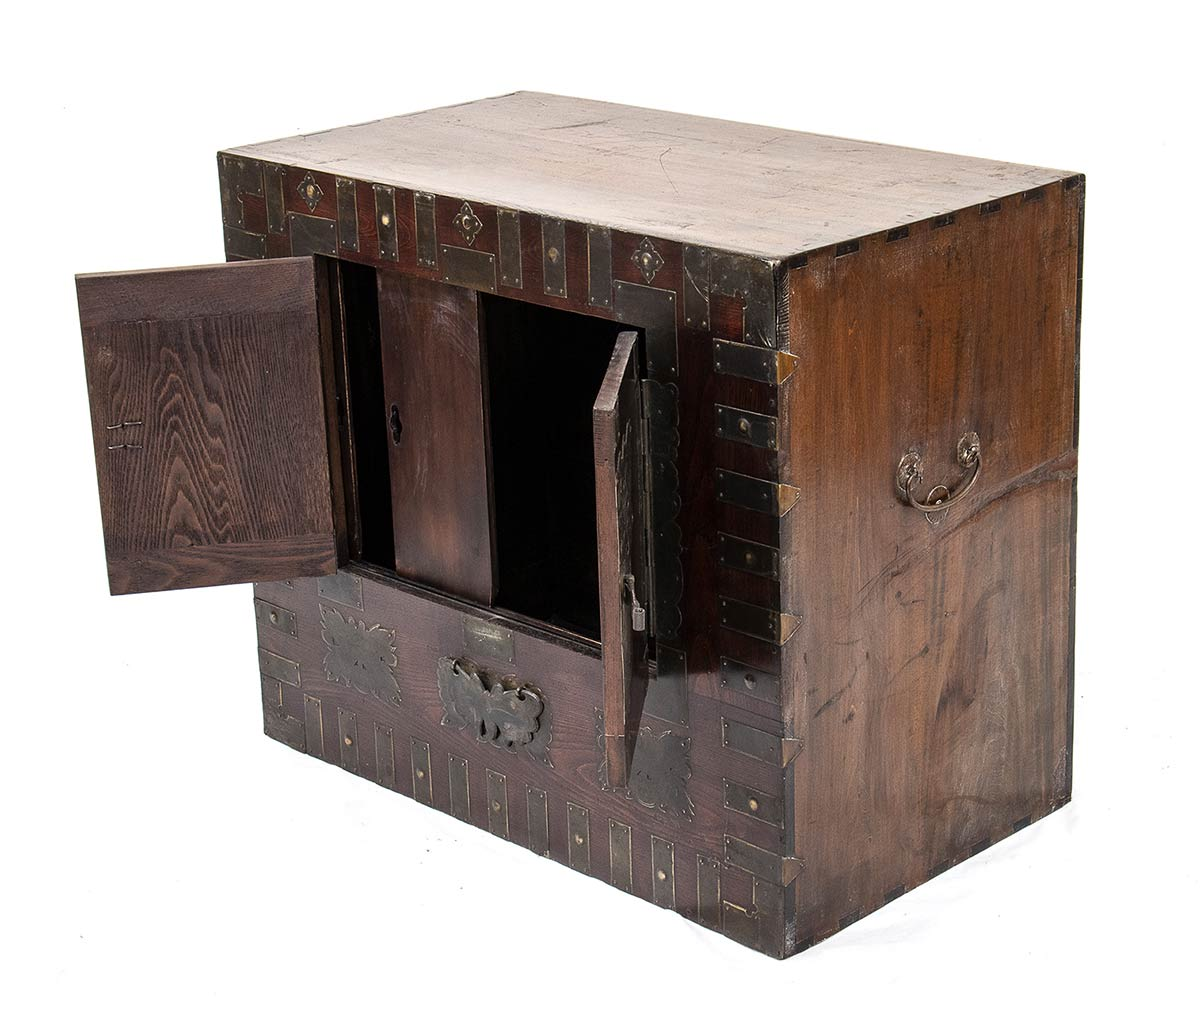 A WOOD AND METAL CHEST, BANDAJIKorea, 19th-20th century - Image 3 of 4